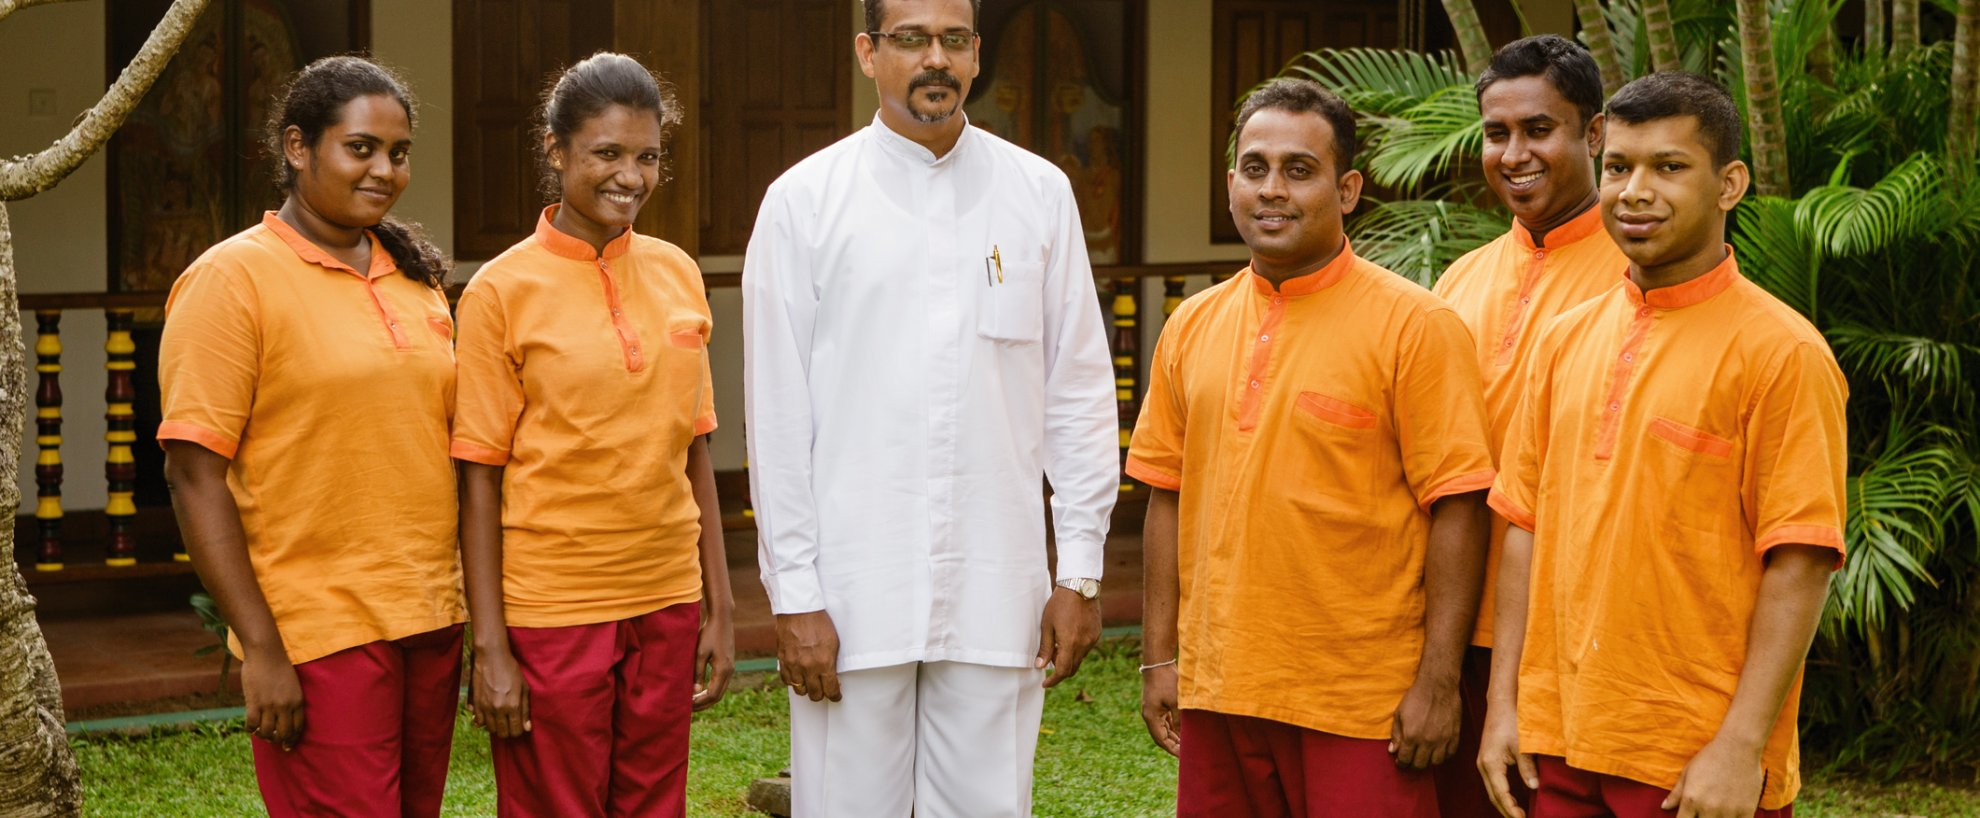 Sri Lanka Thaulle Resort Ayurveda Team